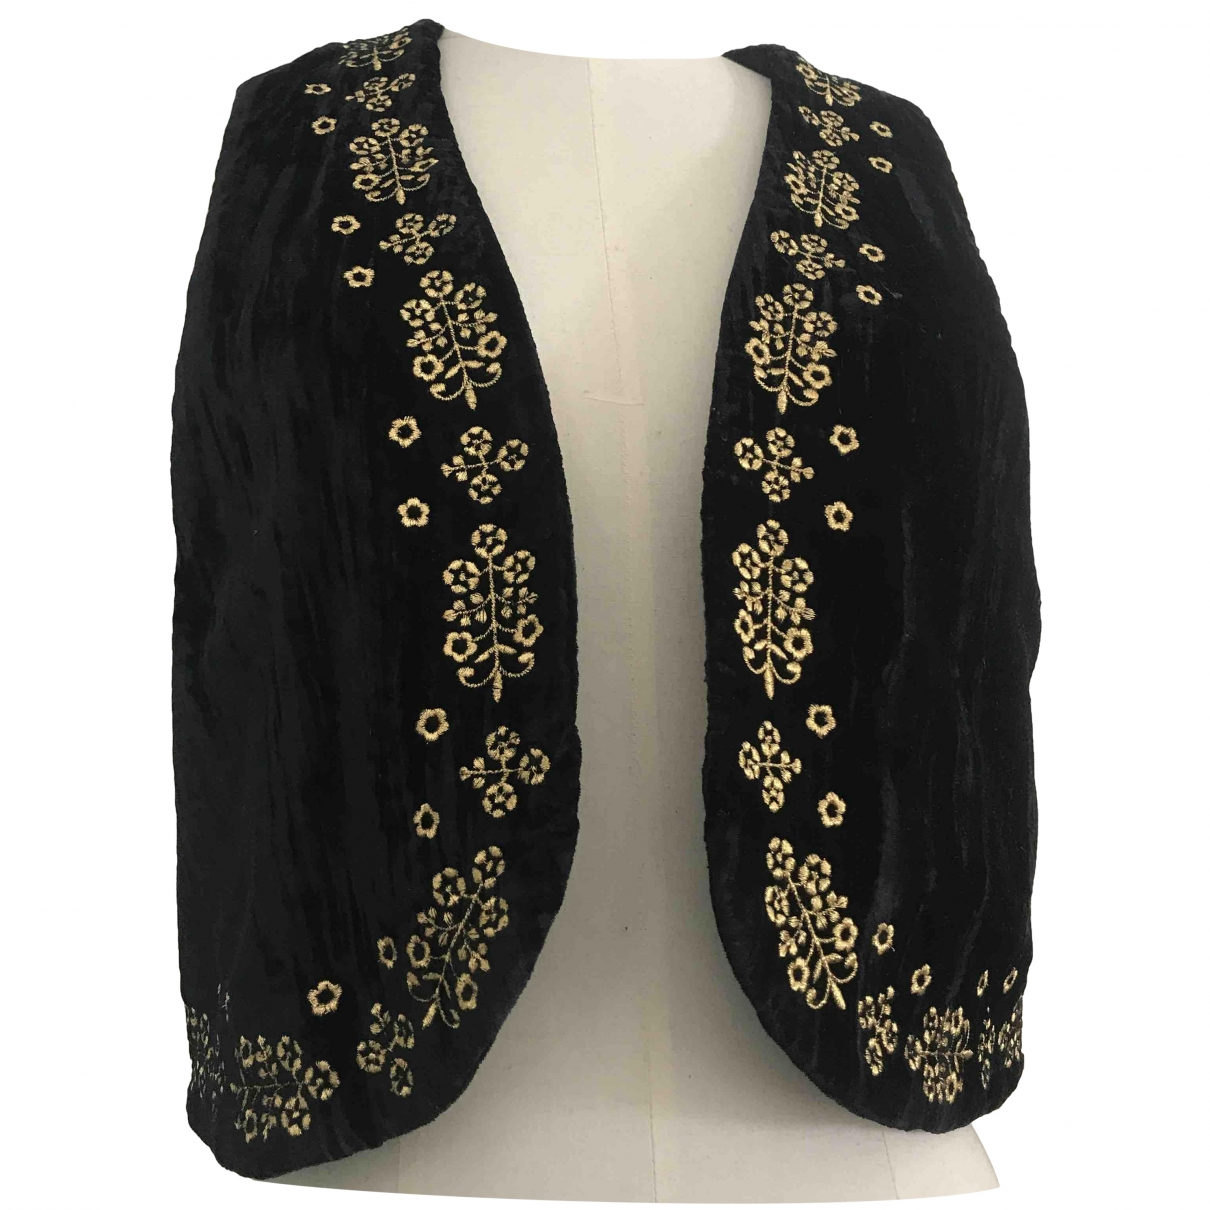 & Stories \N Black Velvet jacket for Women 36 FR